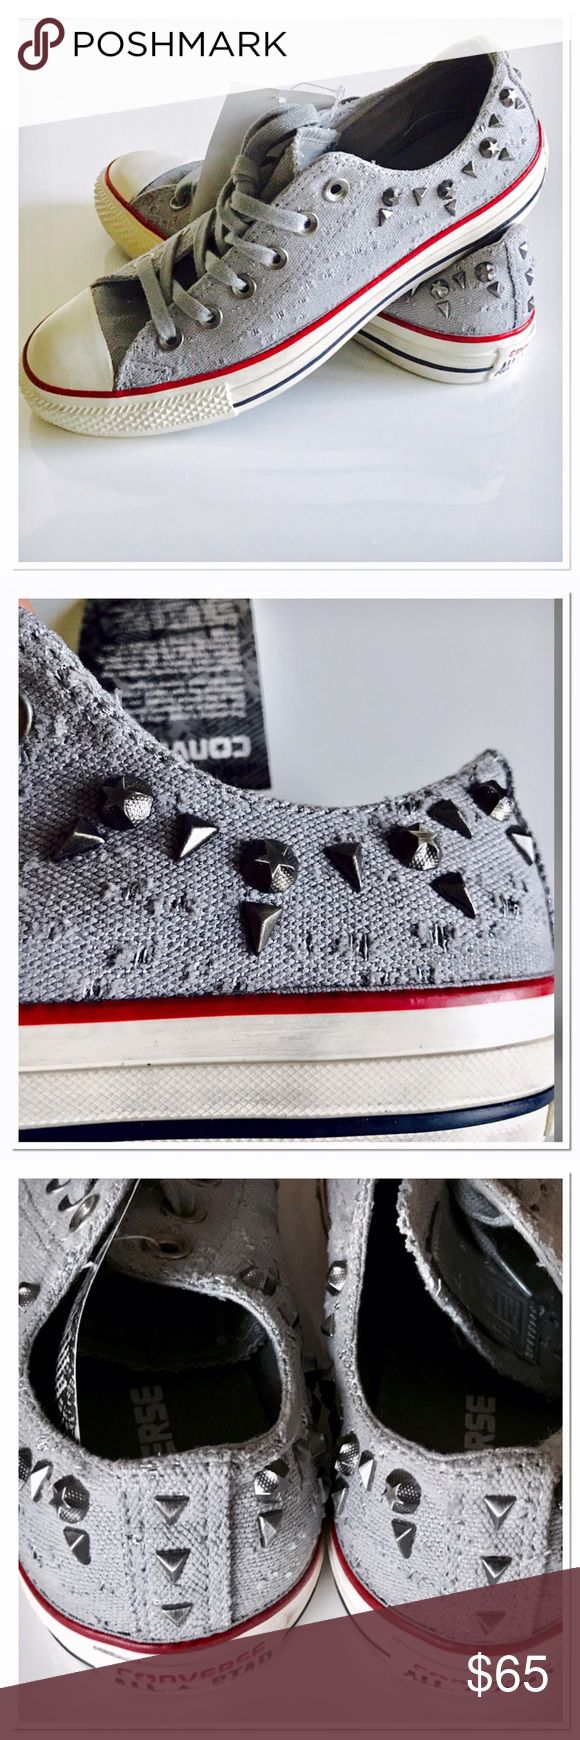 🦋HP🦋NWT Vintage look studded Converse Those are so cool. Unfortunately to big for me! All the distressed part is done by Converse! Please read tag. NWT!!!!!! ❣️HP❣️Best in Shoes❣️ Converse Shoes Sneakers